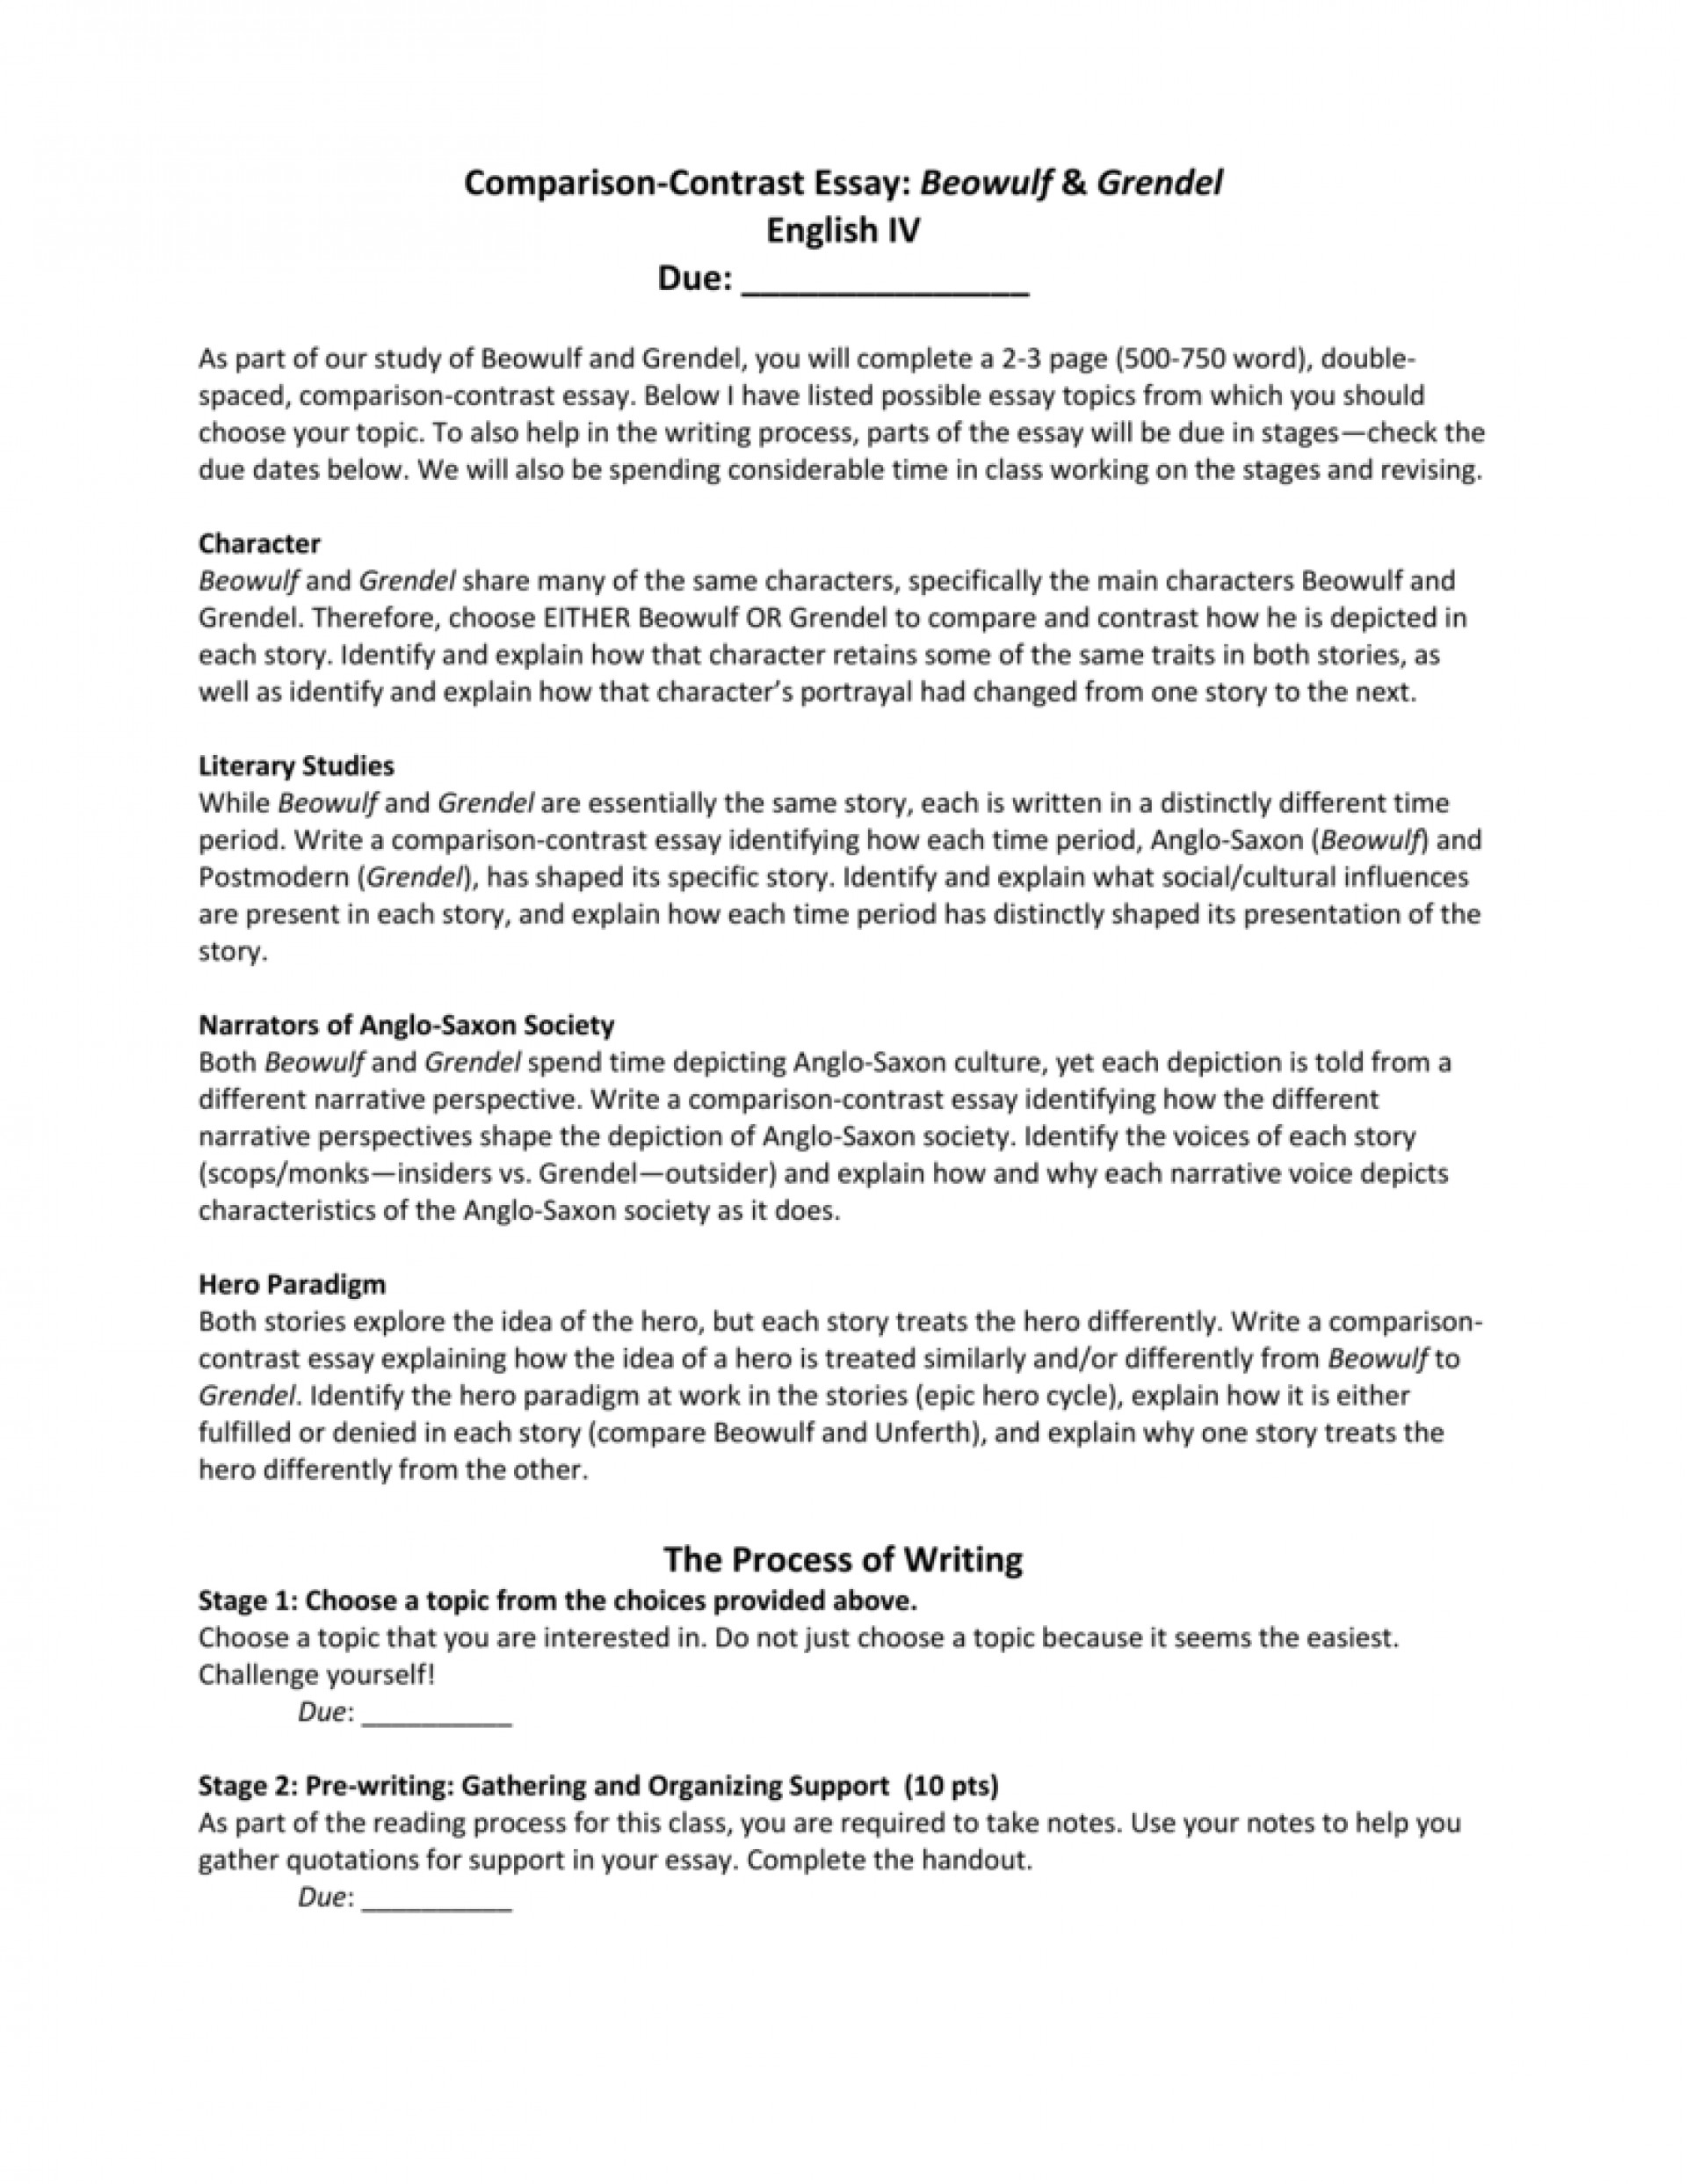 015 008061732 1 Essay Example Comparison And Awful Contrast Topics List Thesis Statement Compare Means 1920